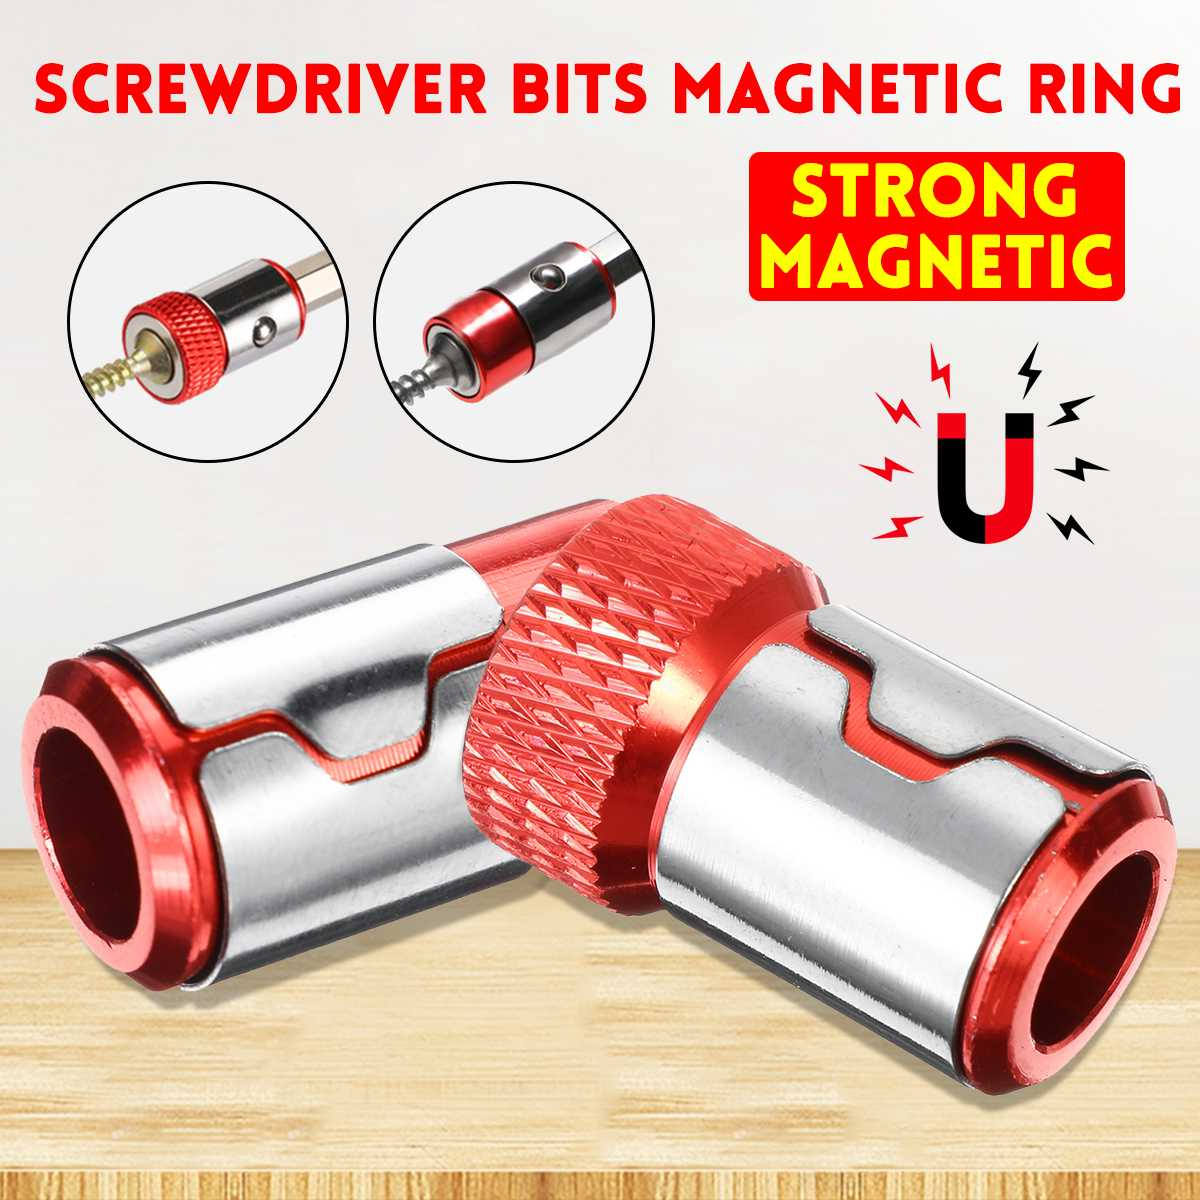 1PCS 1/4'' 6.35mm Screwdriver Bits Magnetic Ring Aluminum Alloy Metal Strong Magnetizer Screw Hand Tools Dropshipping 2019